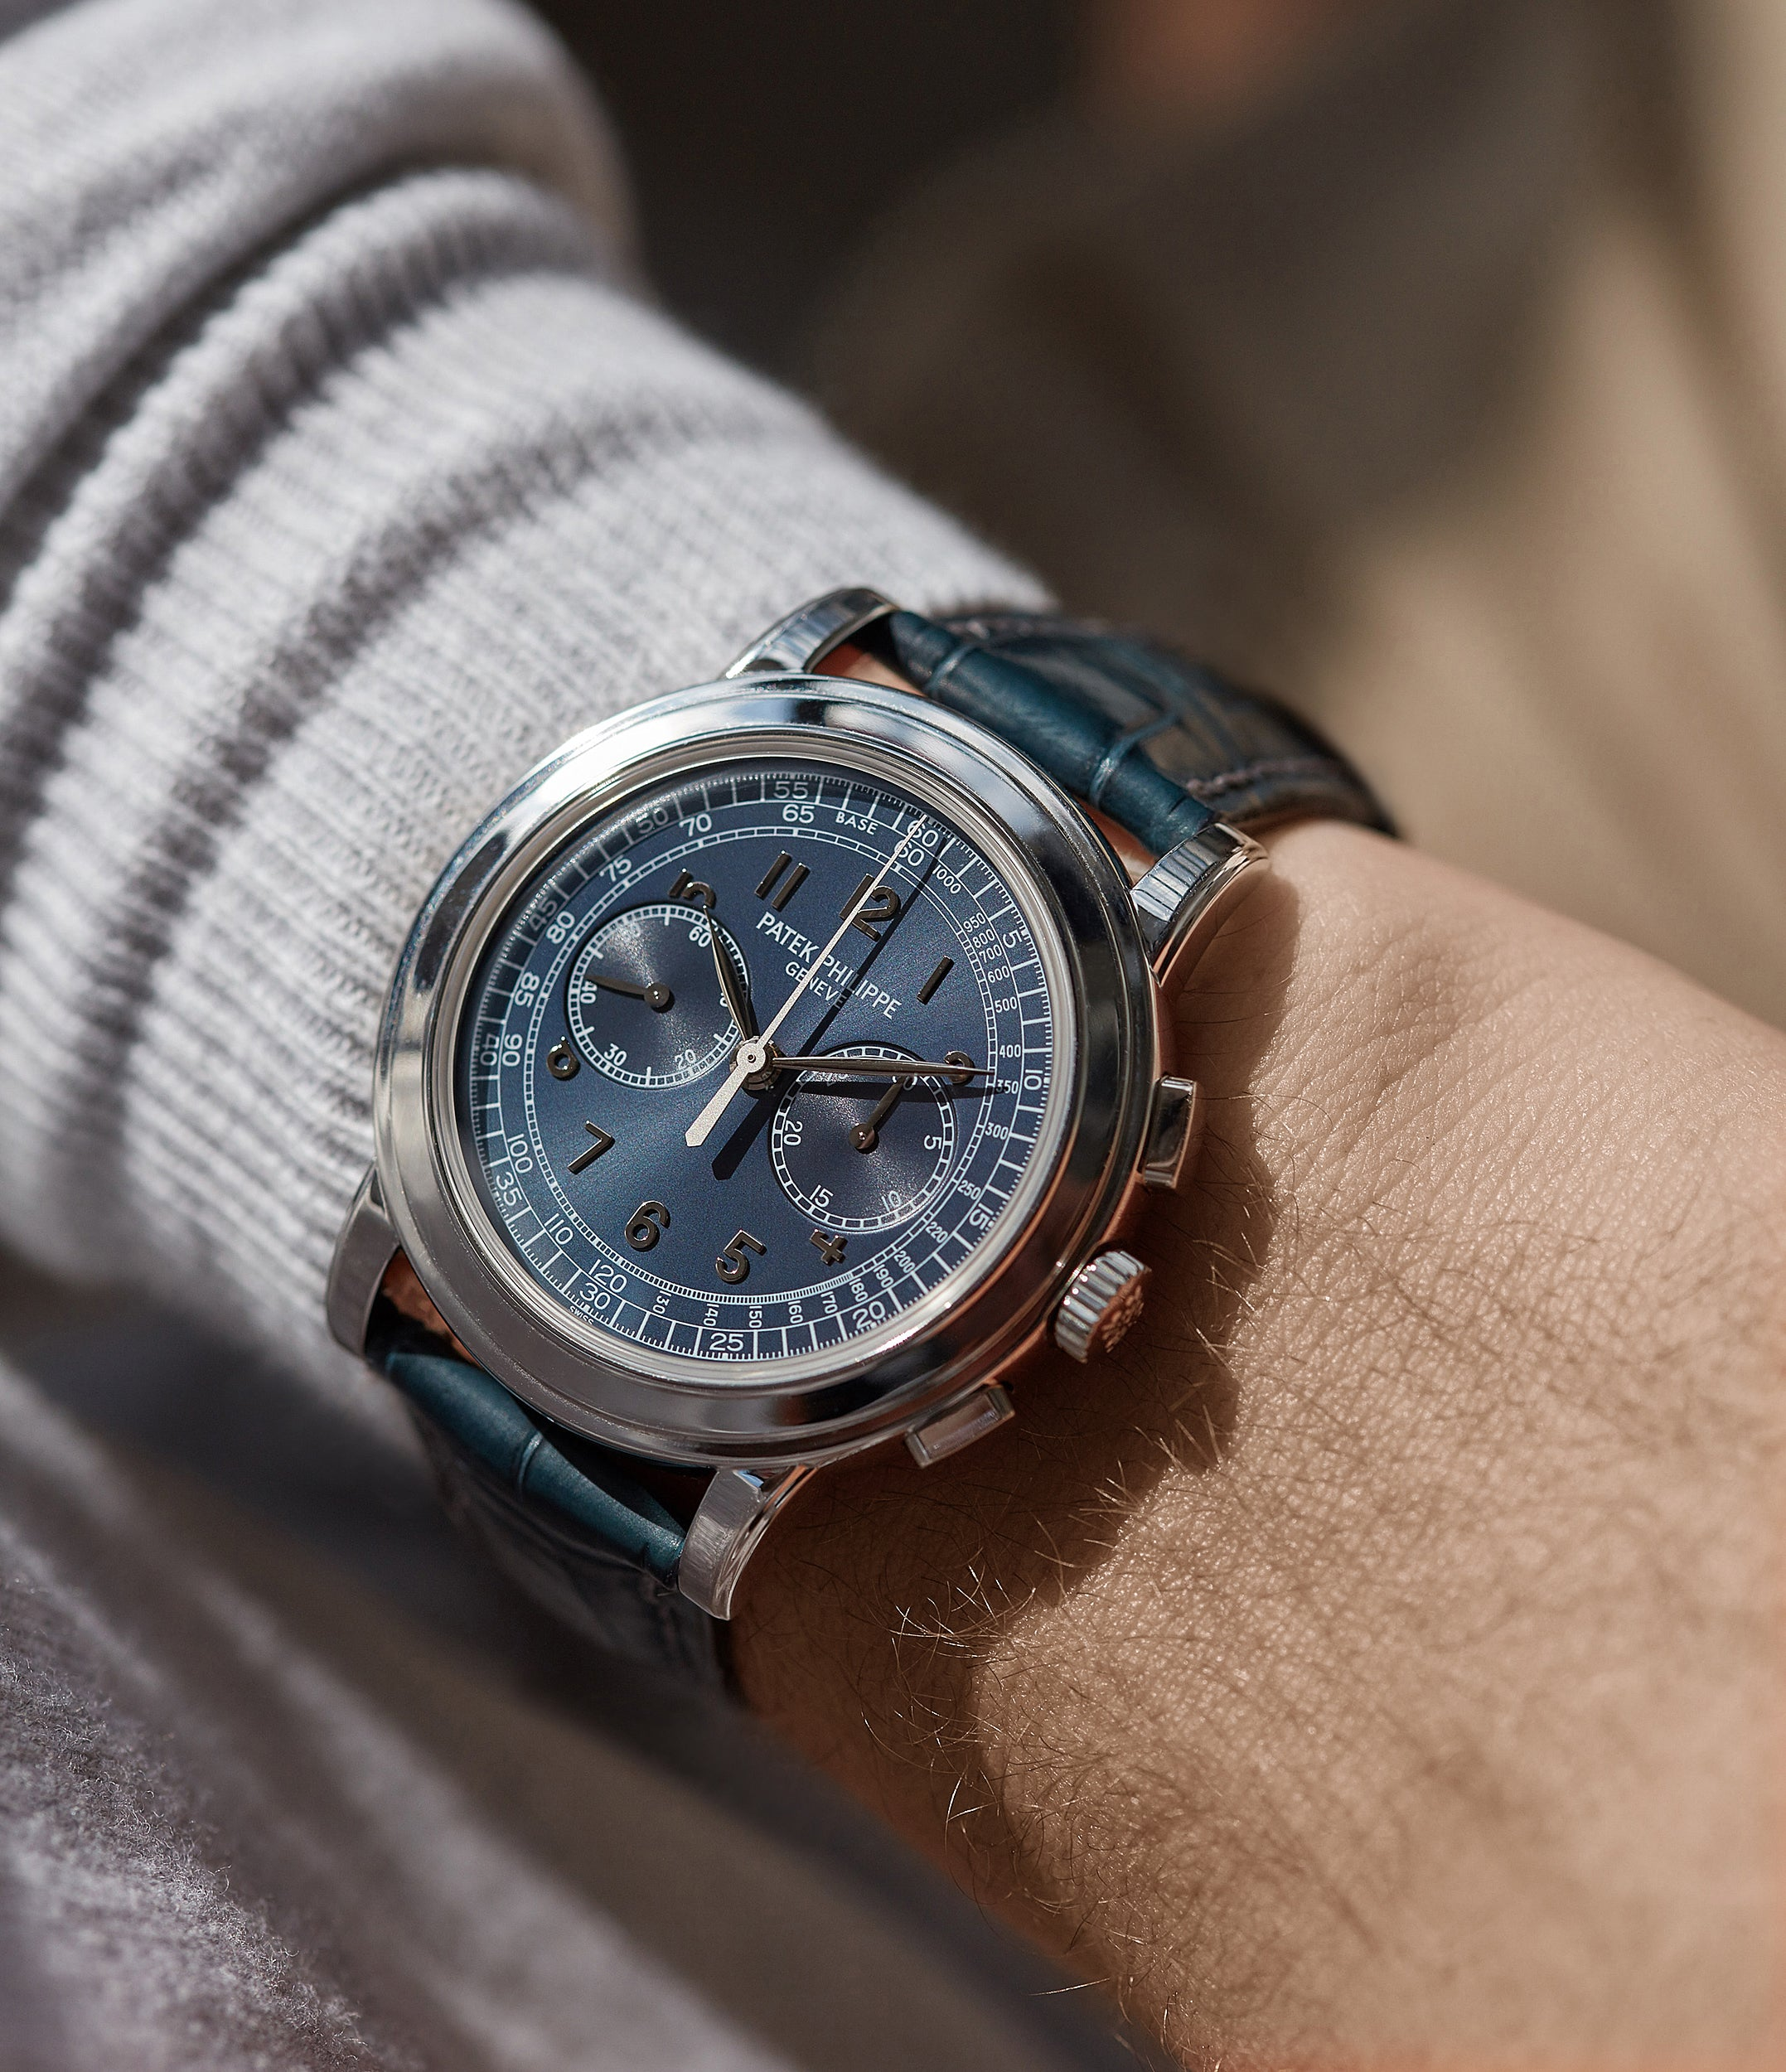 on the wrist Patek Philippe 5070P Chronograph rare platinum 42mm luxury watch for sale online at A Collected Man London UK specialist of rare watches